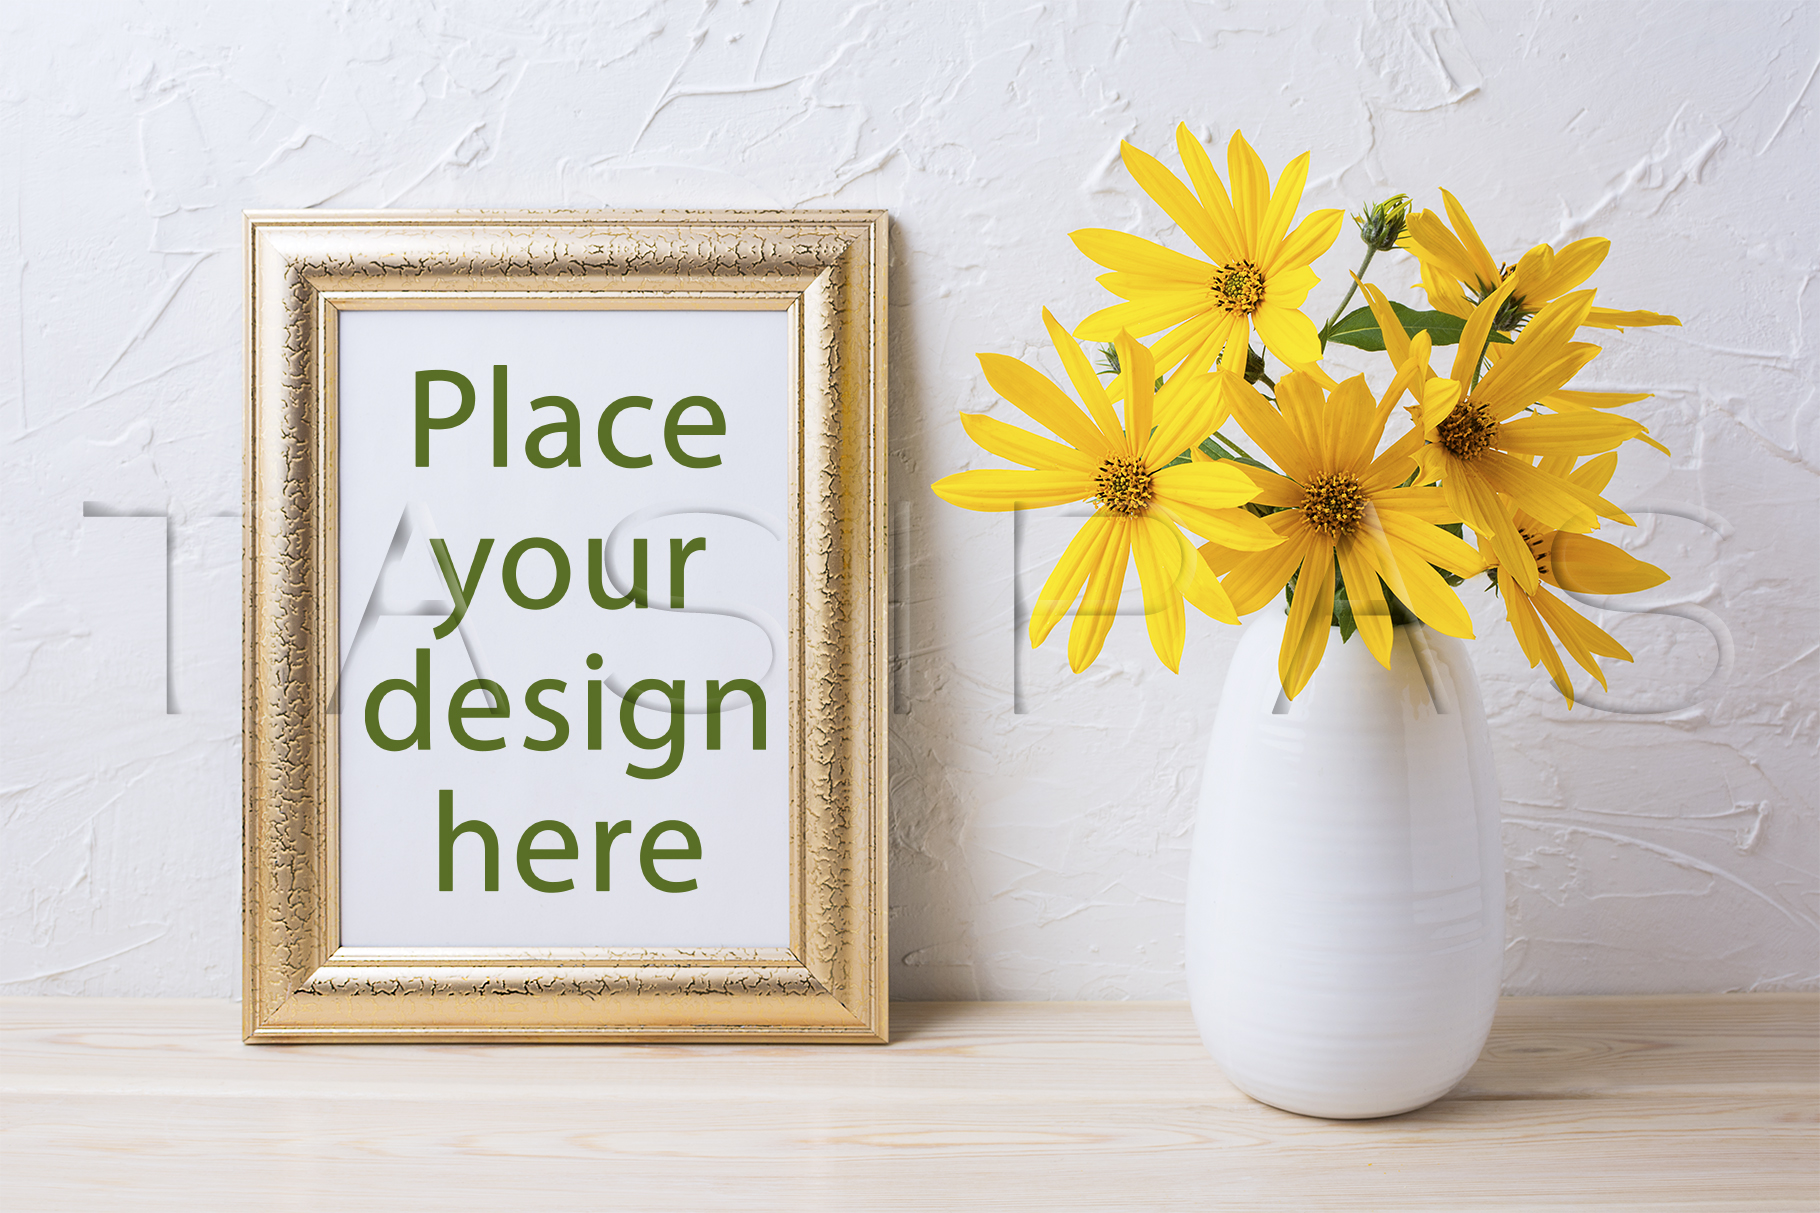 Golden frame mockup with yellow rosinweed flowers in vase example image 1